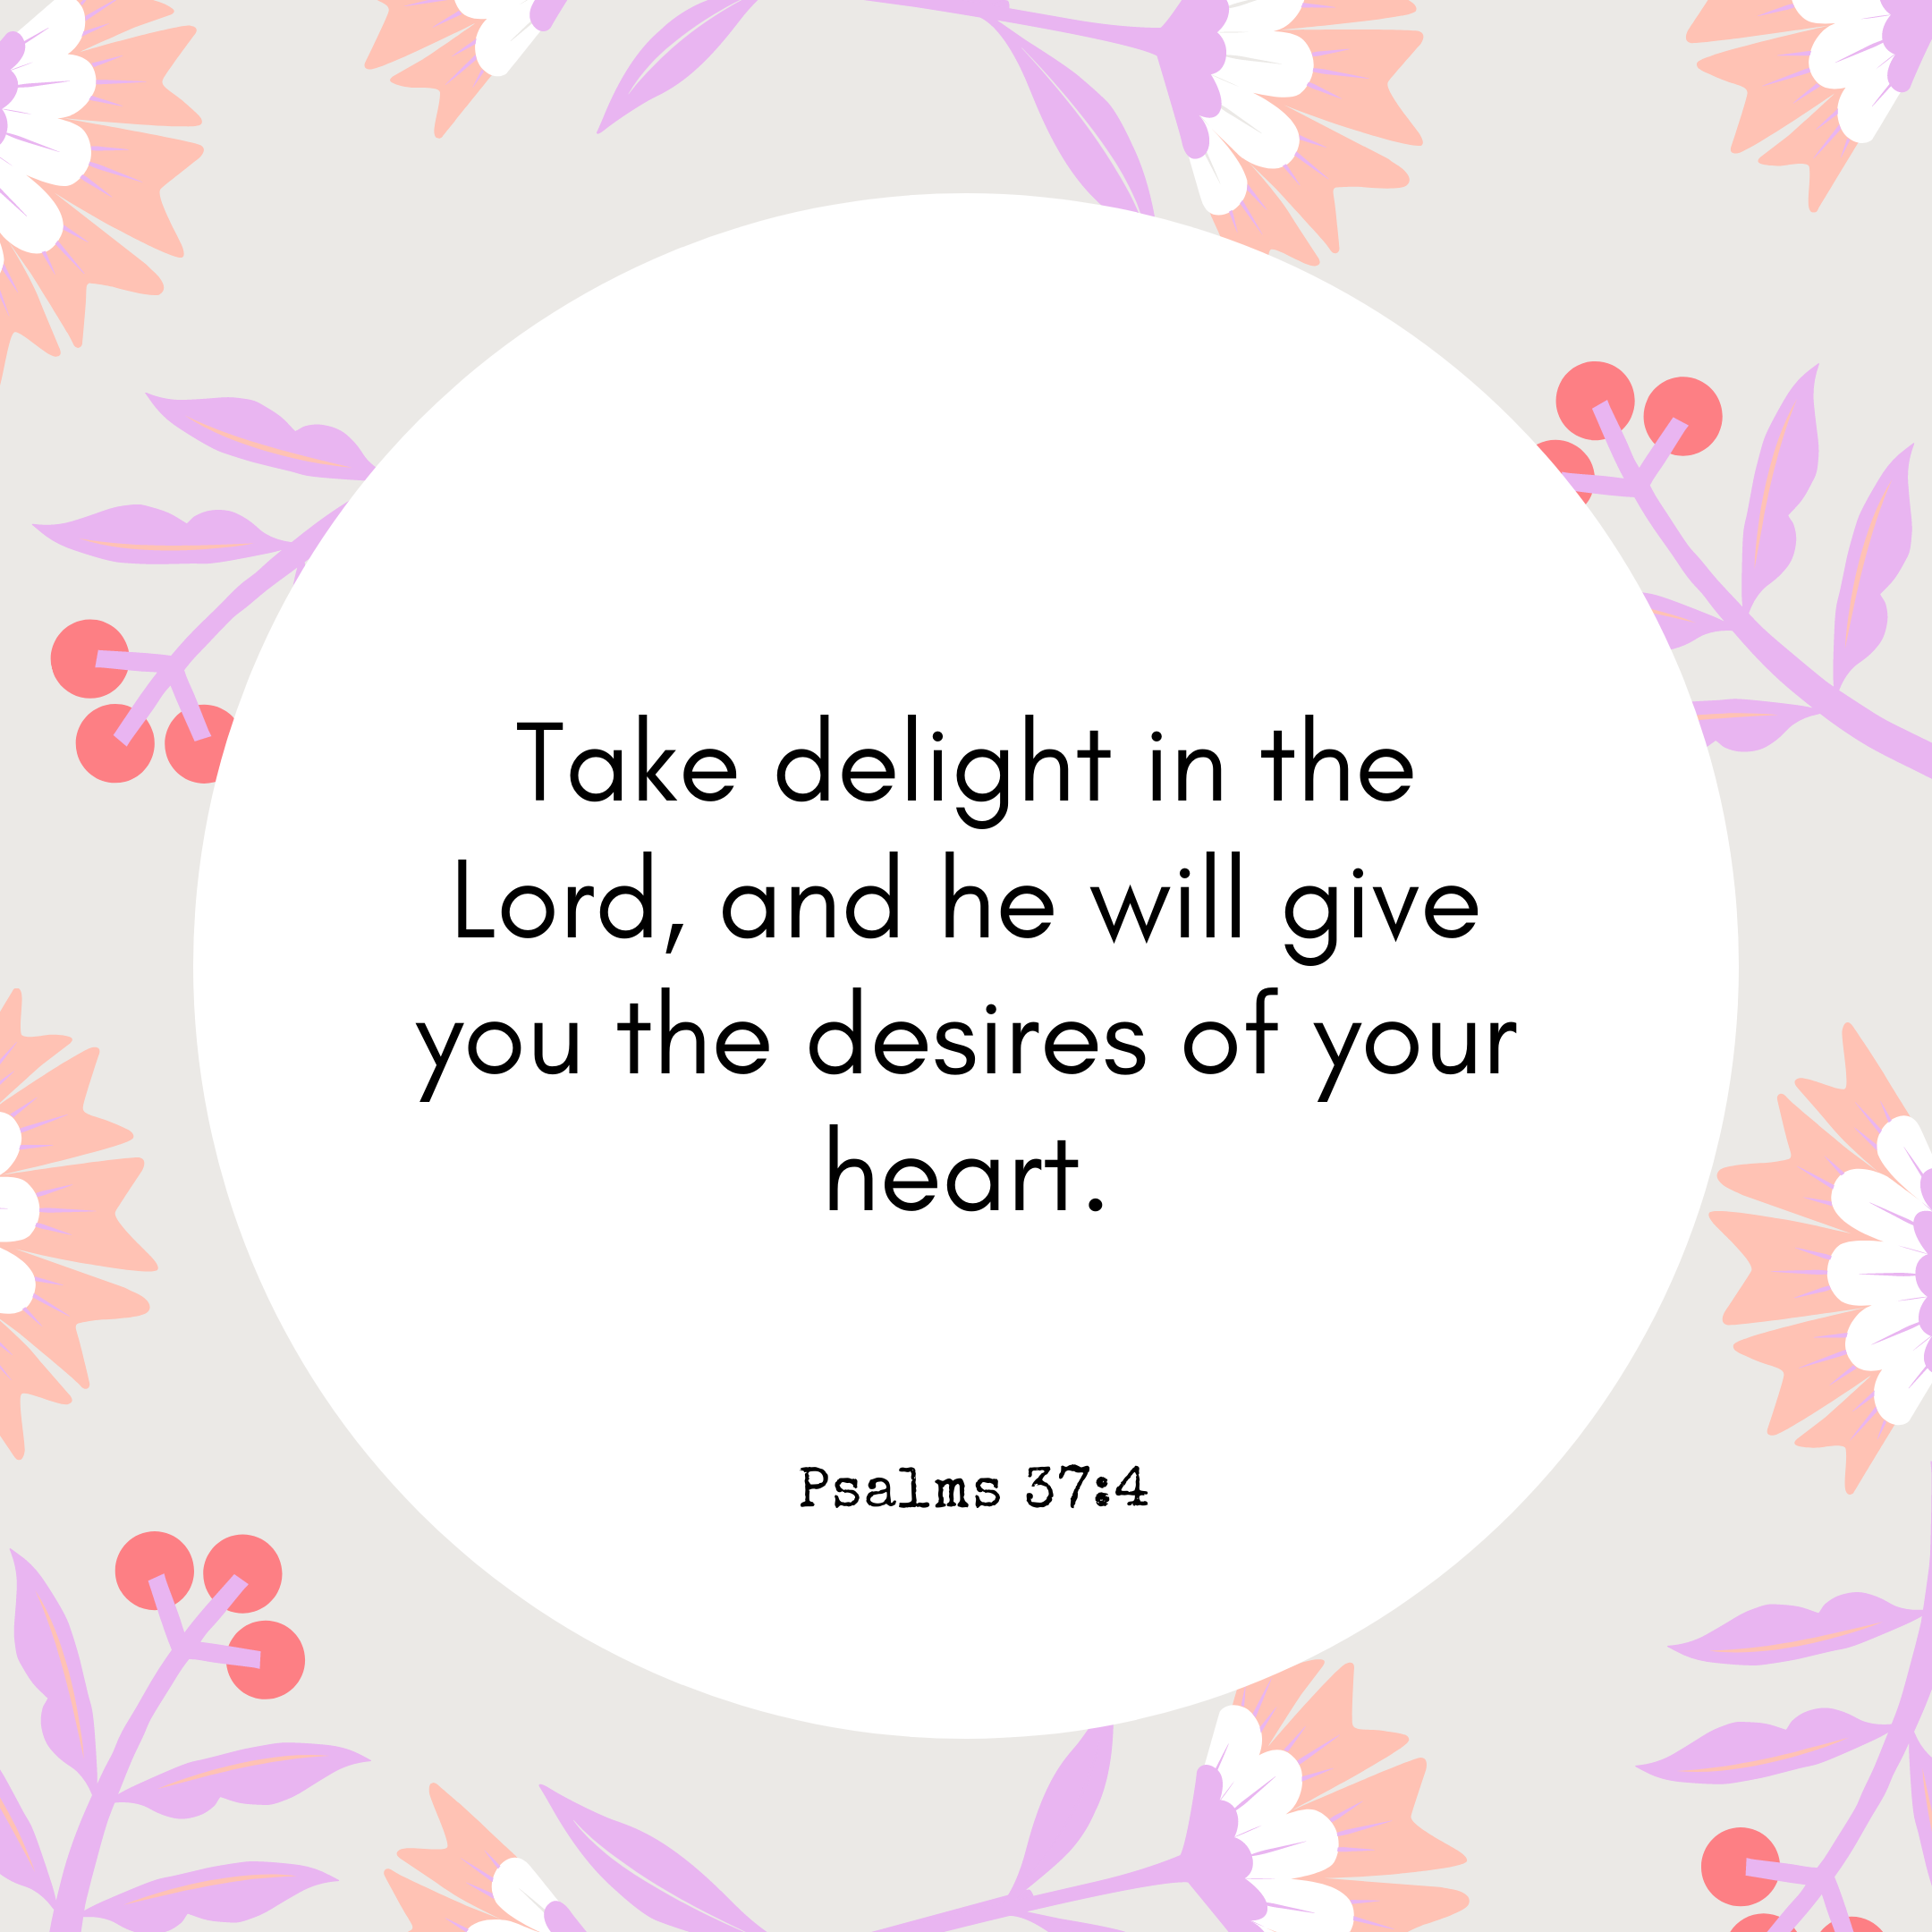 Psalms 37:4 Take delight in the Lord, and he will give you the desires of your heart.